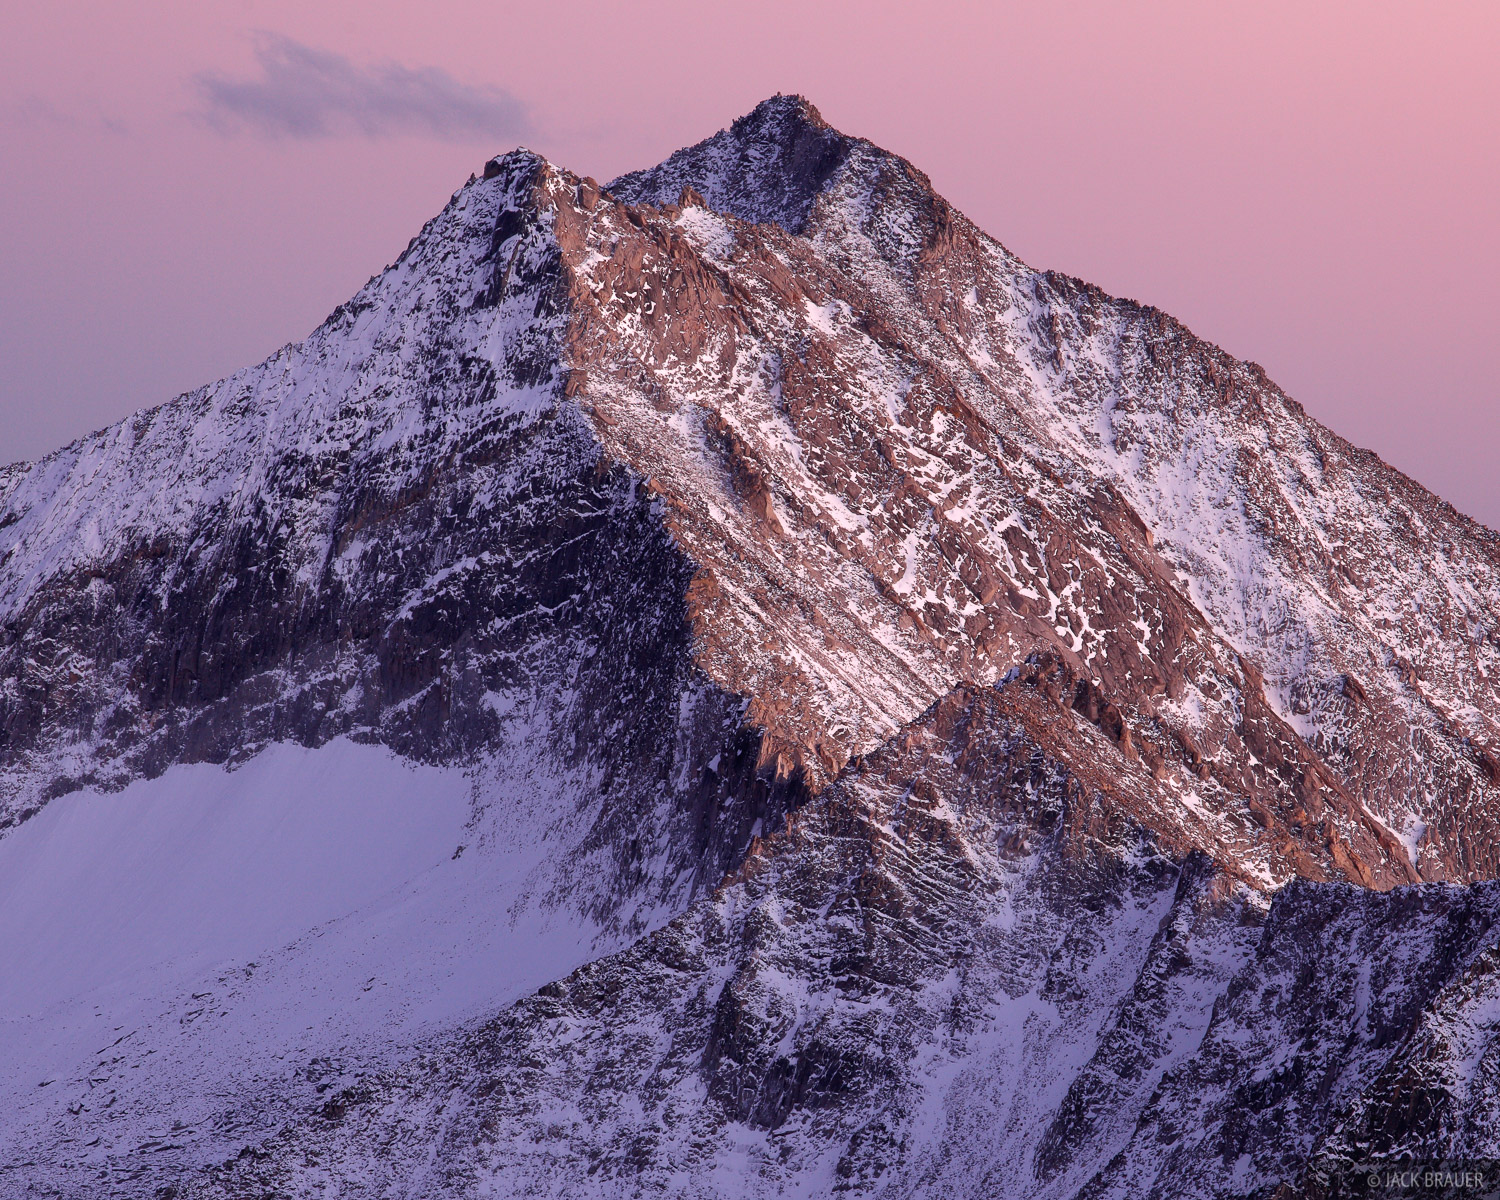 Snowmass Mountain, Elk Mountains, Colorado, dusk, Maroon Bells-Snowmass Wilderness, photo